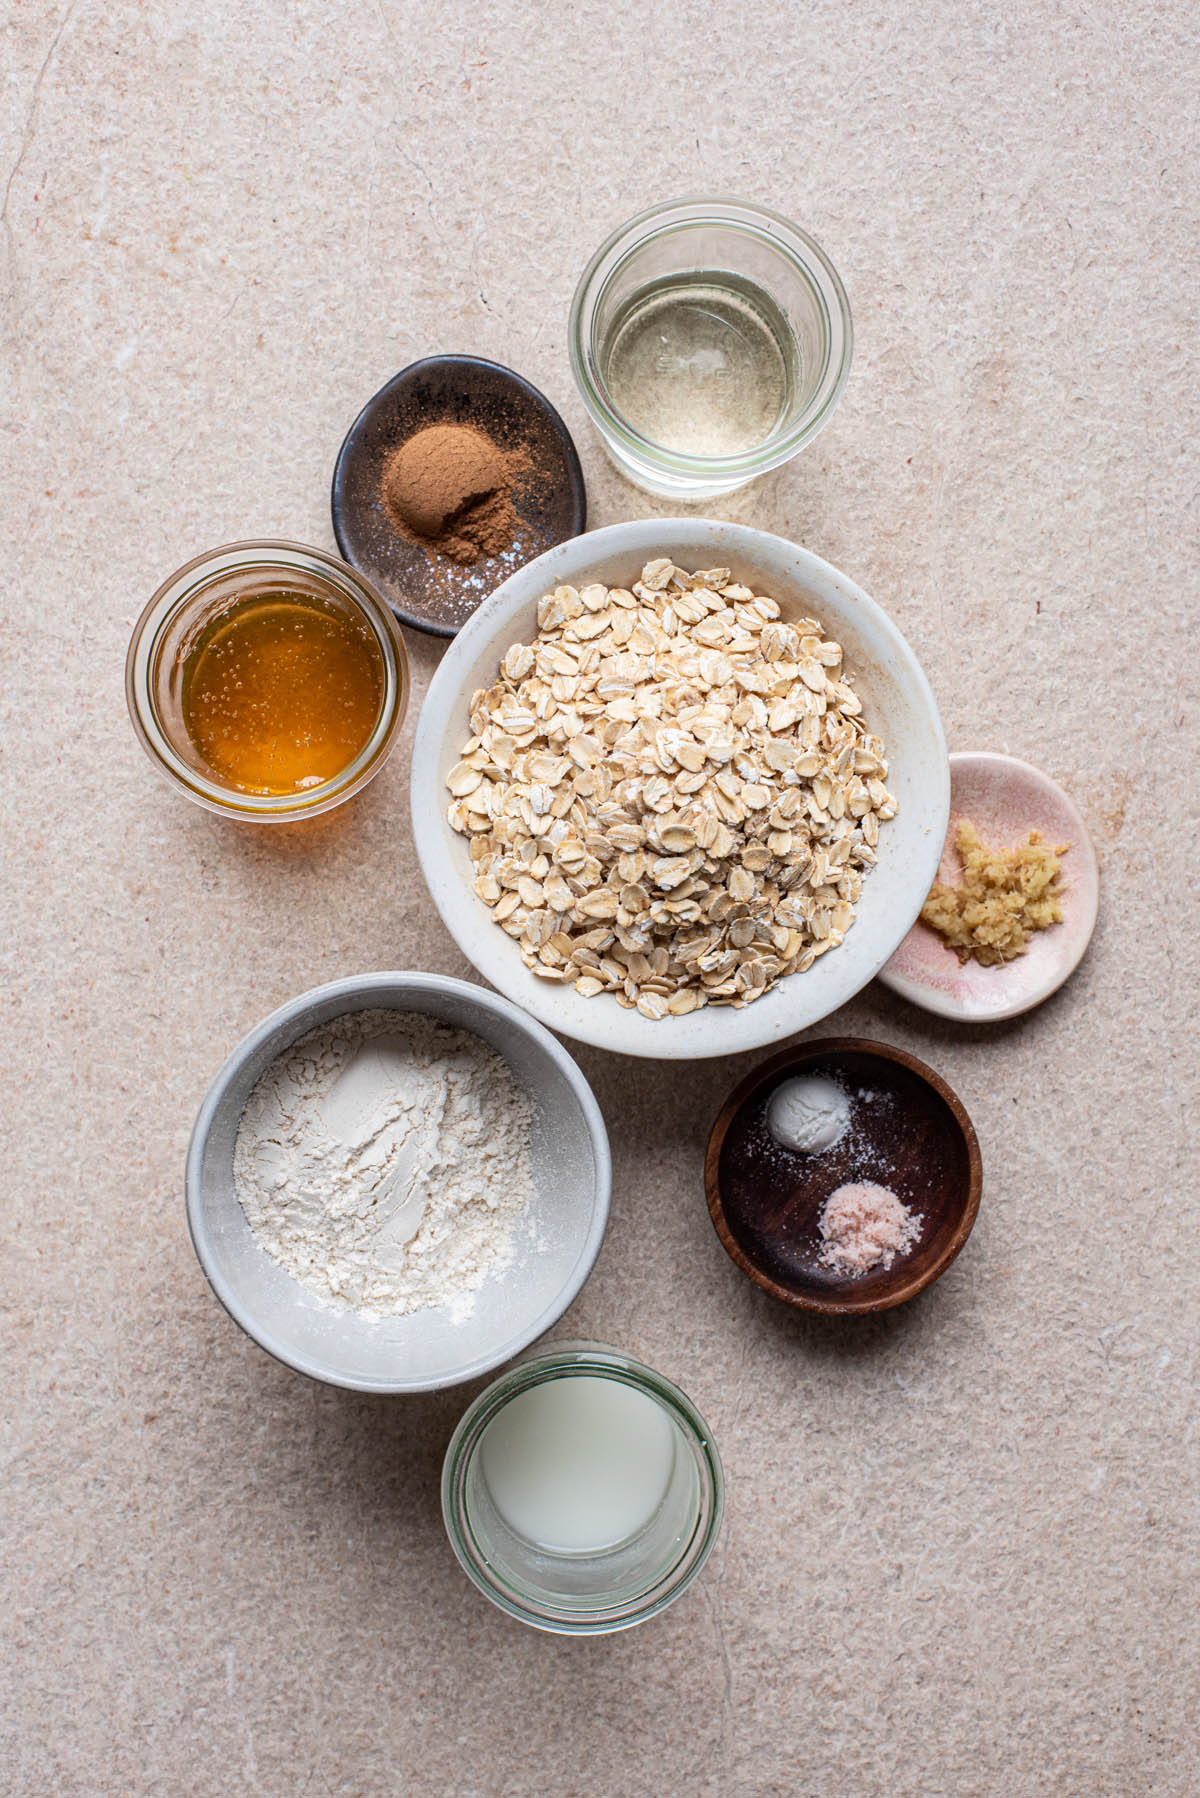 Honey oatmeal cookie ingredients.